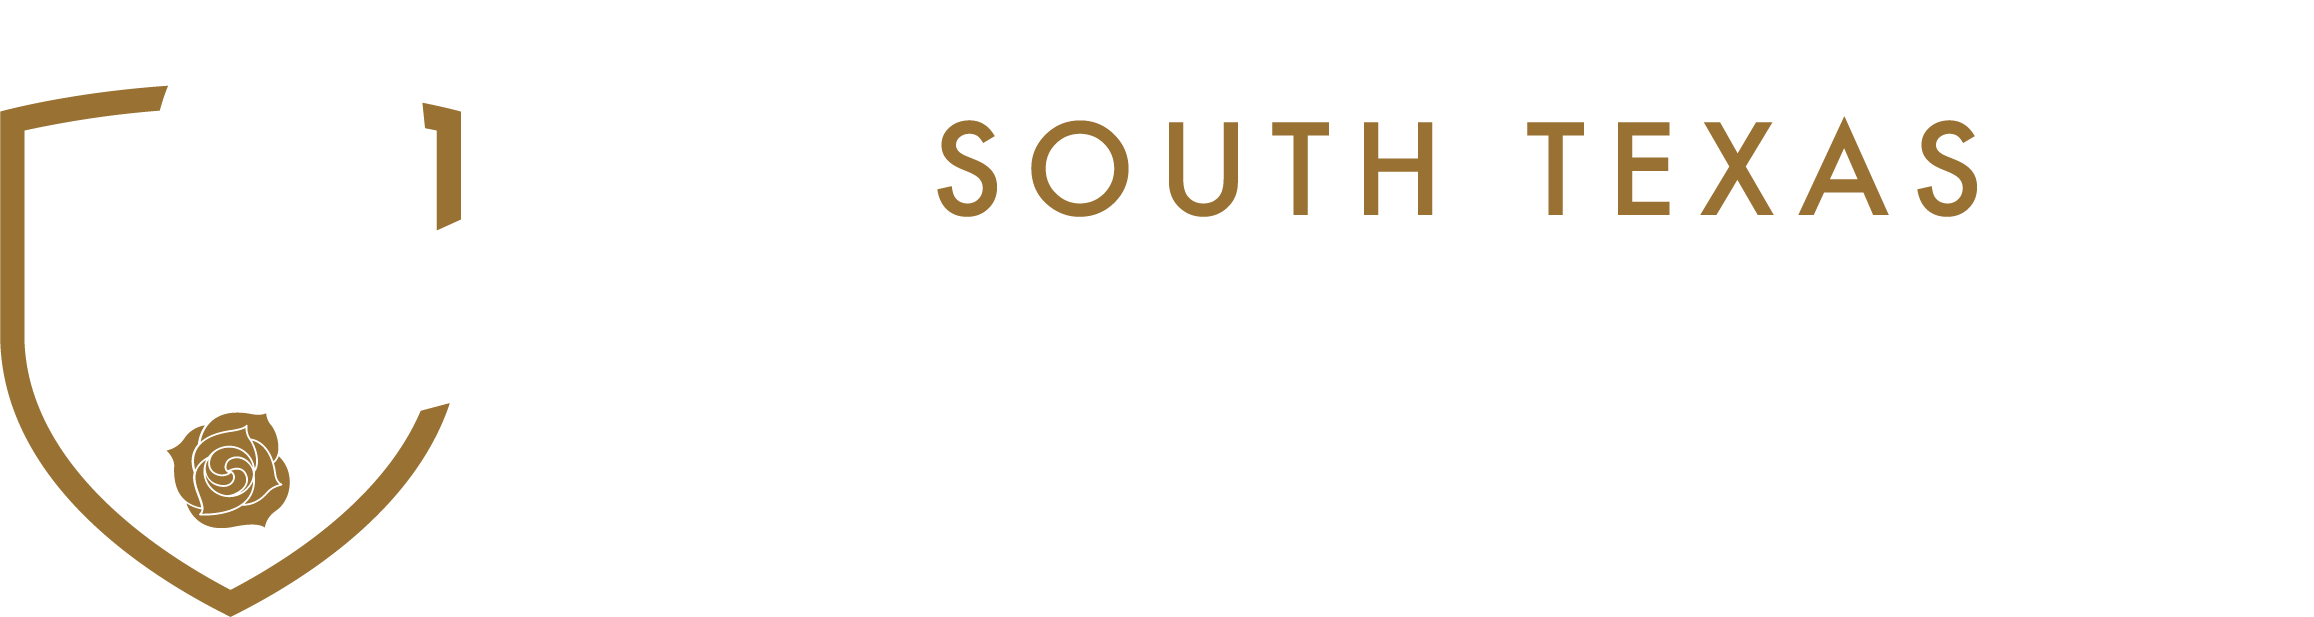 South Texas Alamo Derby